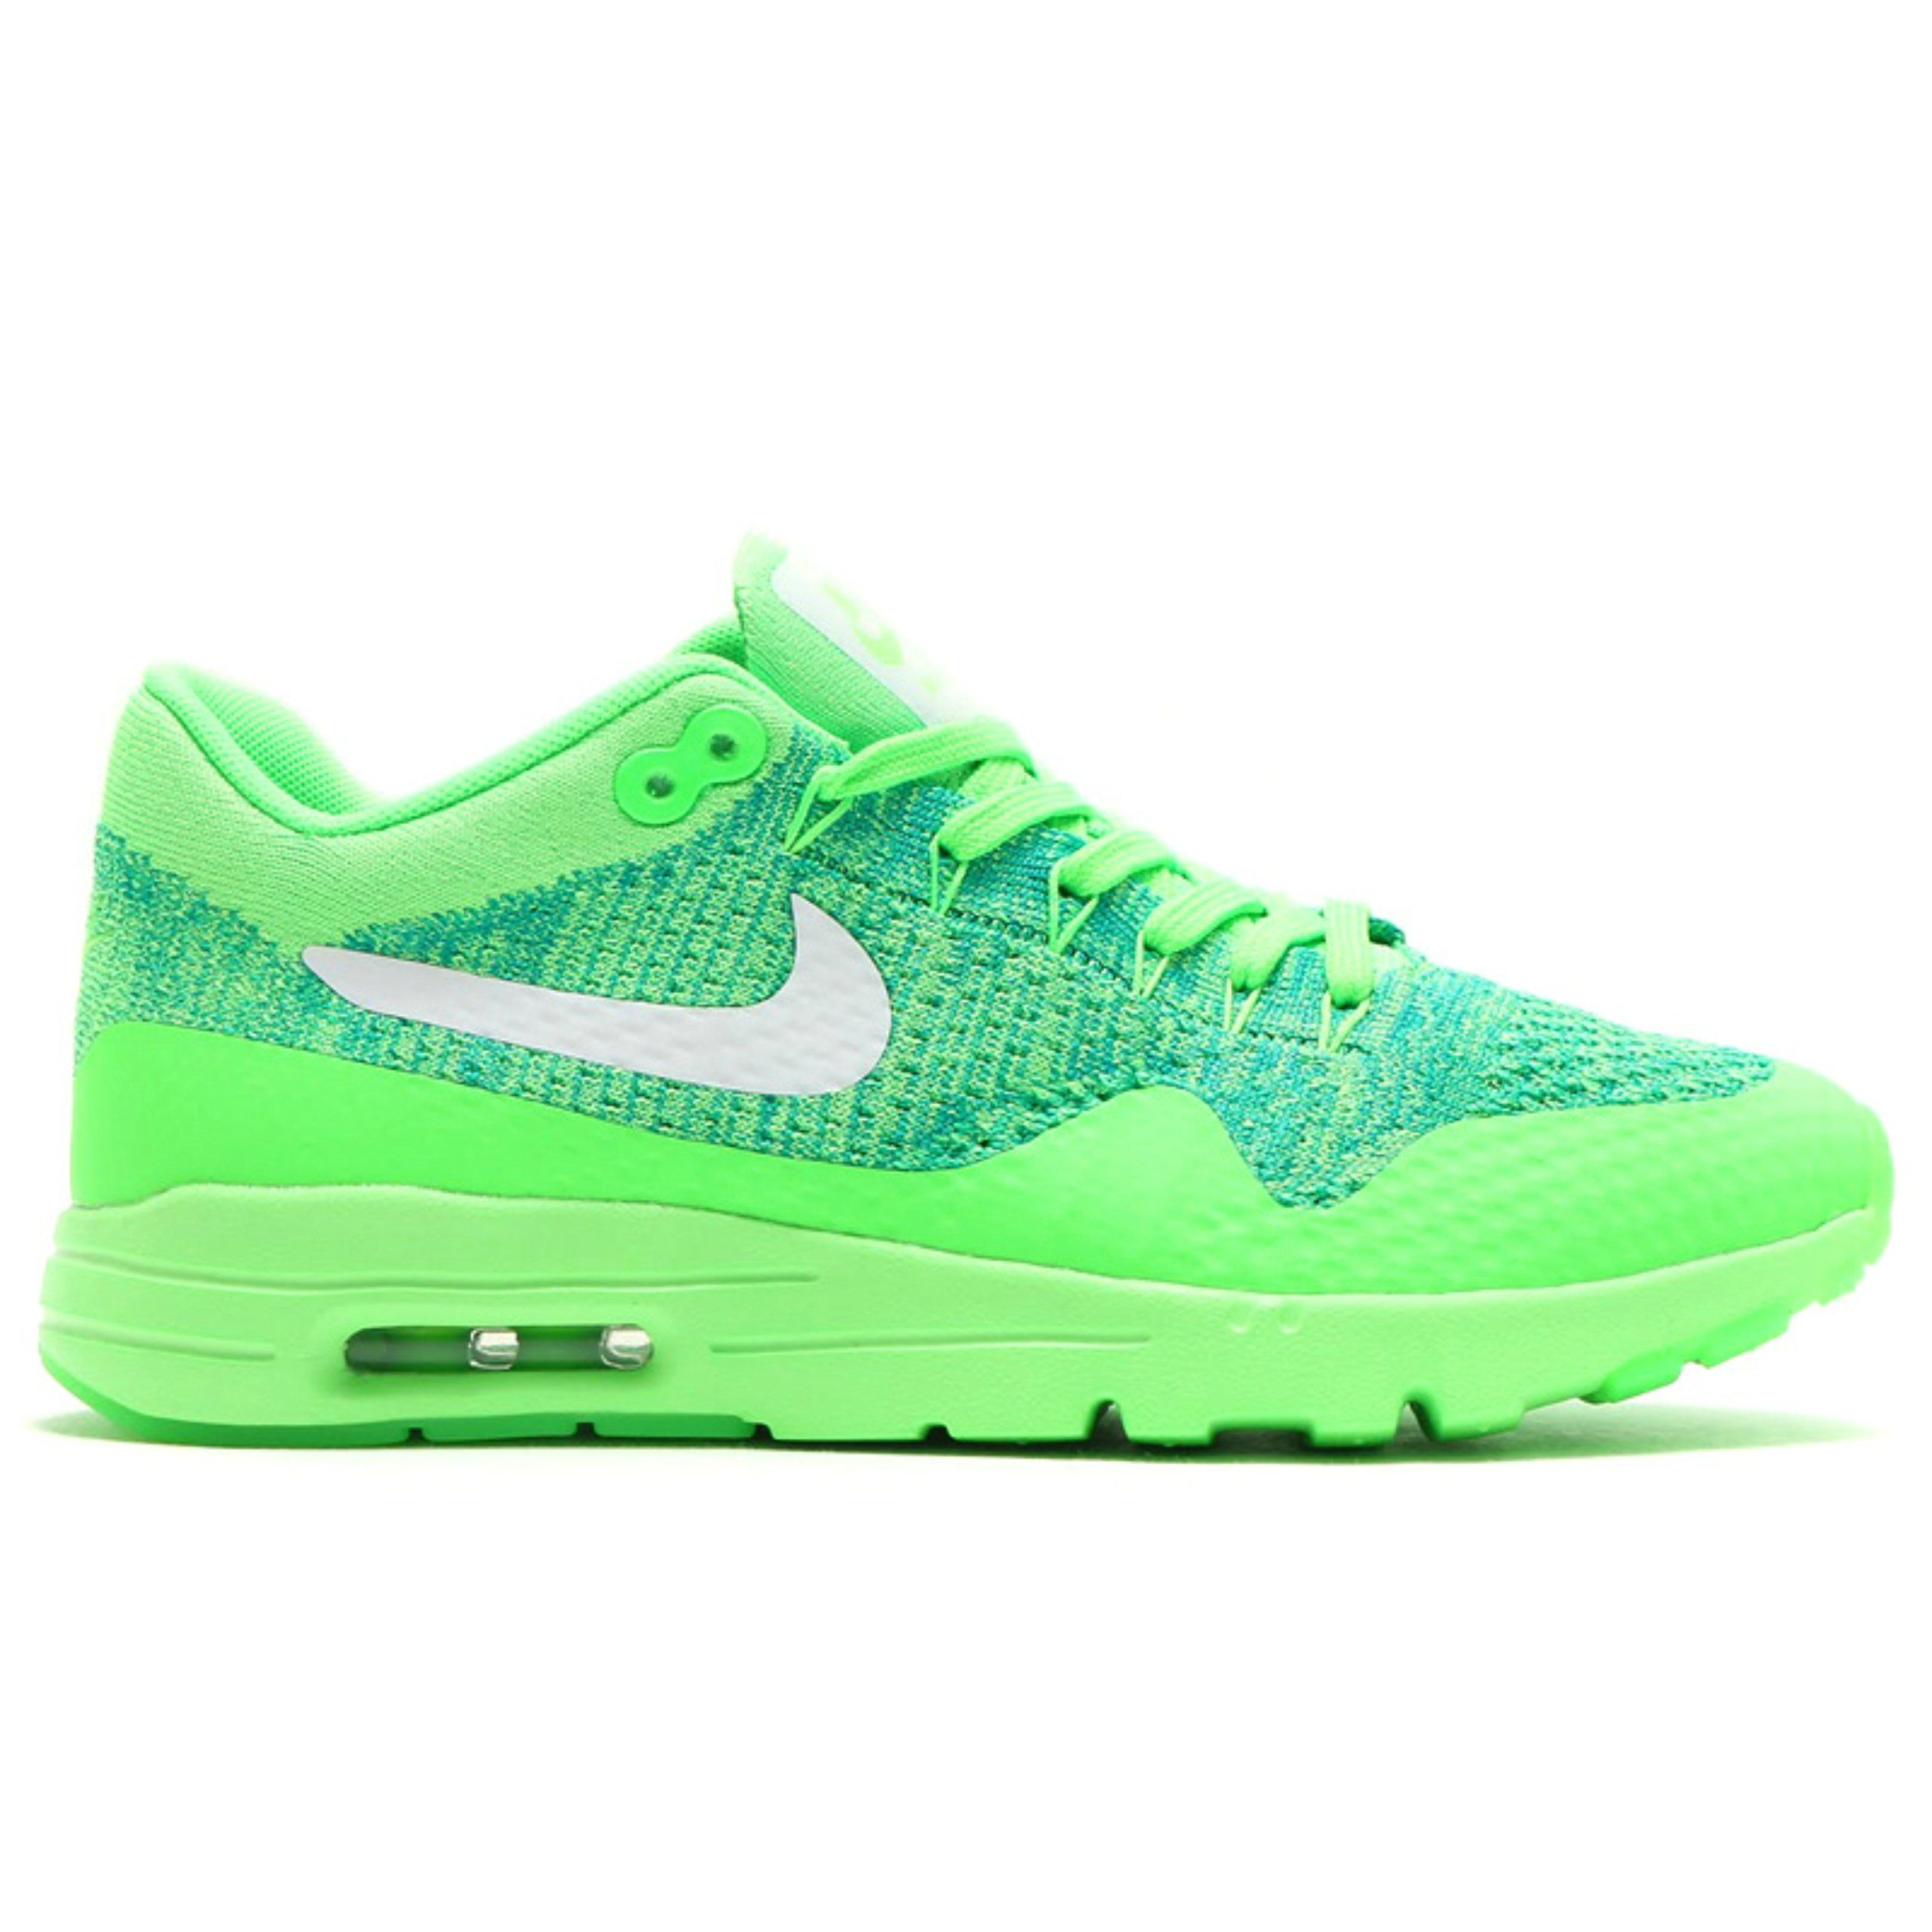 huge discount f614d 77778 Nike Womens Air Max 1 Ultra Flyknit Running Trainers 843387 Sneakers Shoes  (US 10,